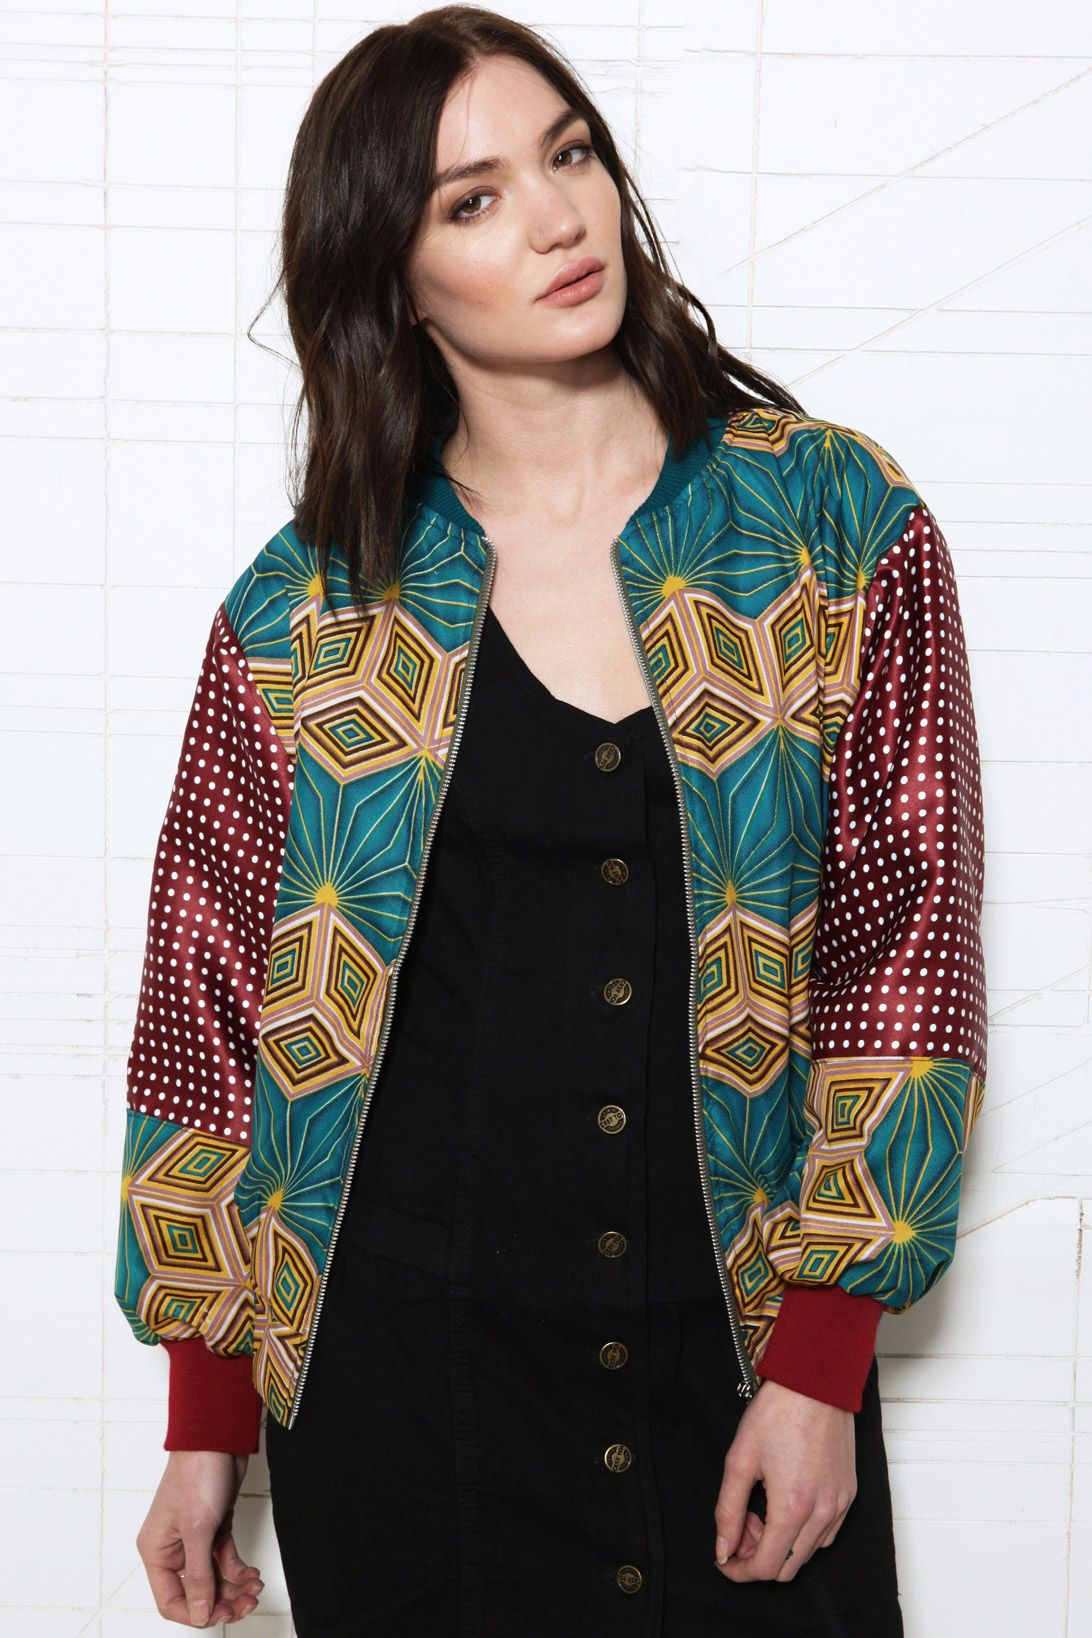 Modern patchwork: Renewal My Tribe Bomber Jacket at Urban Outfitters #fashion #london #UrbanOutfitters